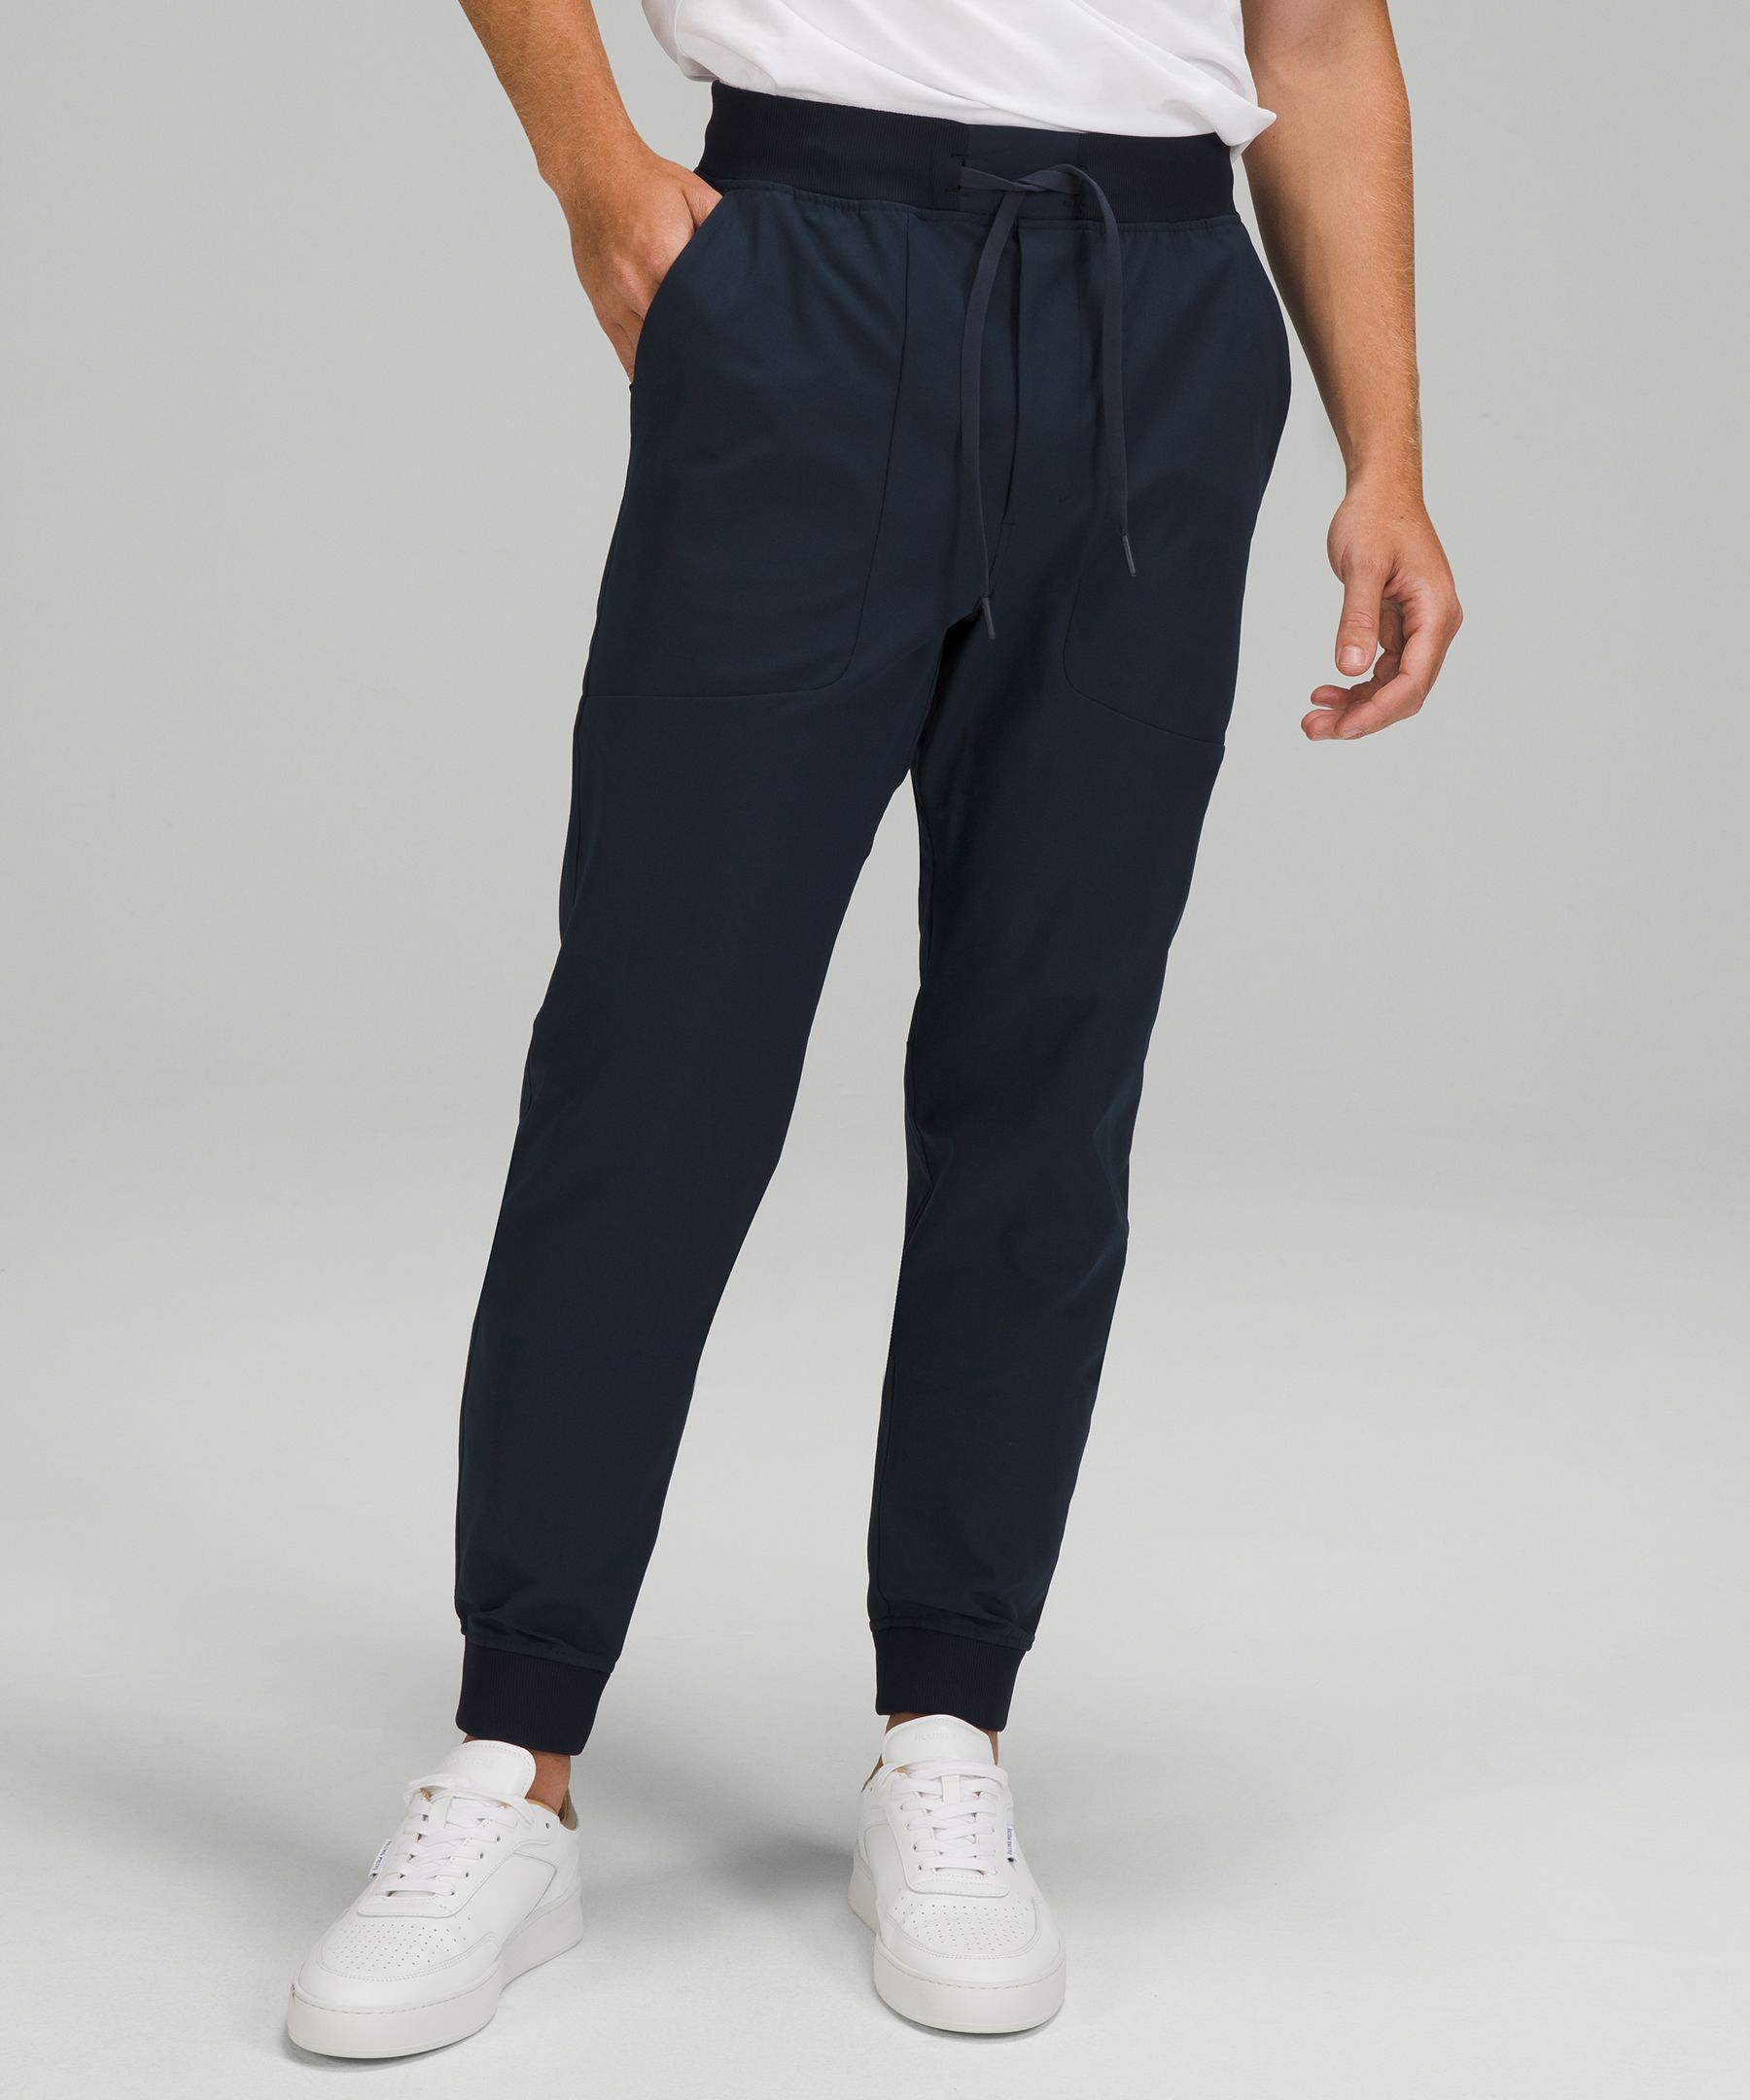 These sleek joggers feature  our ABC (anti-ball crushing)  engineering and four-way  stretch Warpstreme™ fabric,  making them an obvious choice  for recreation or travel.